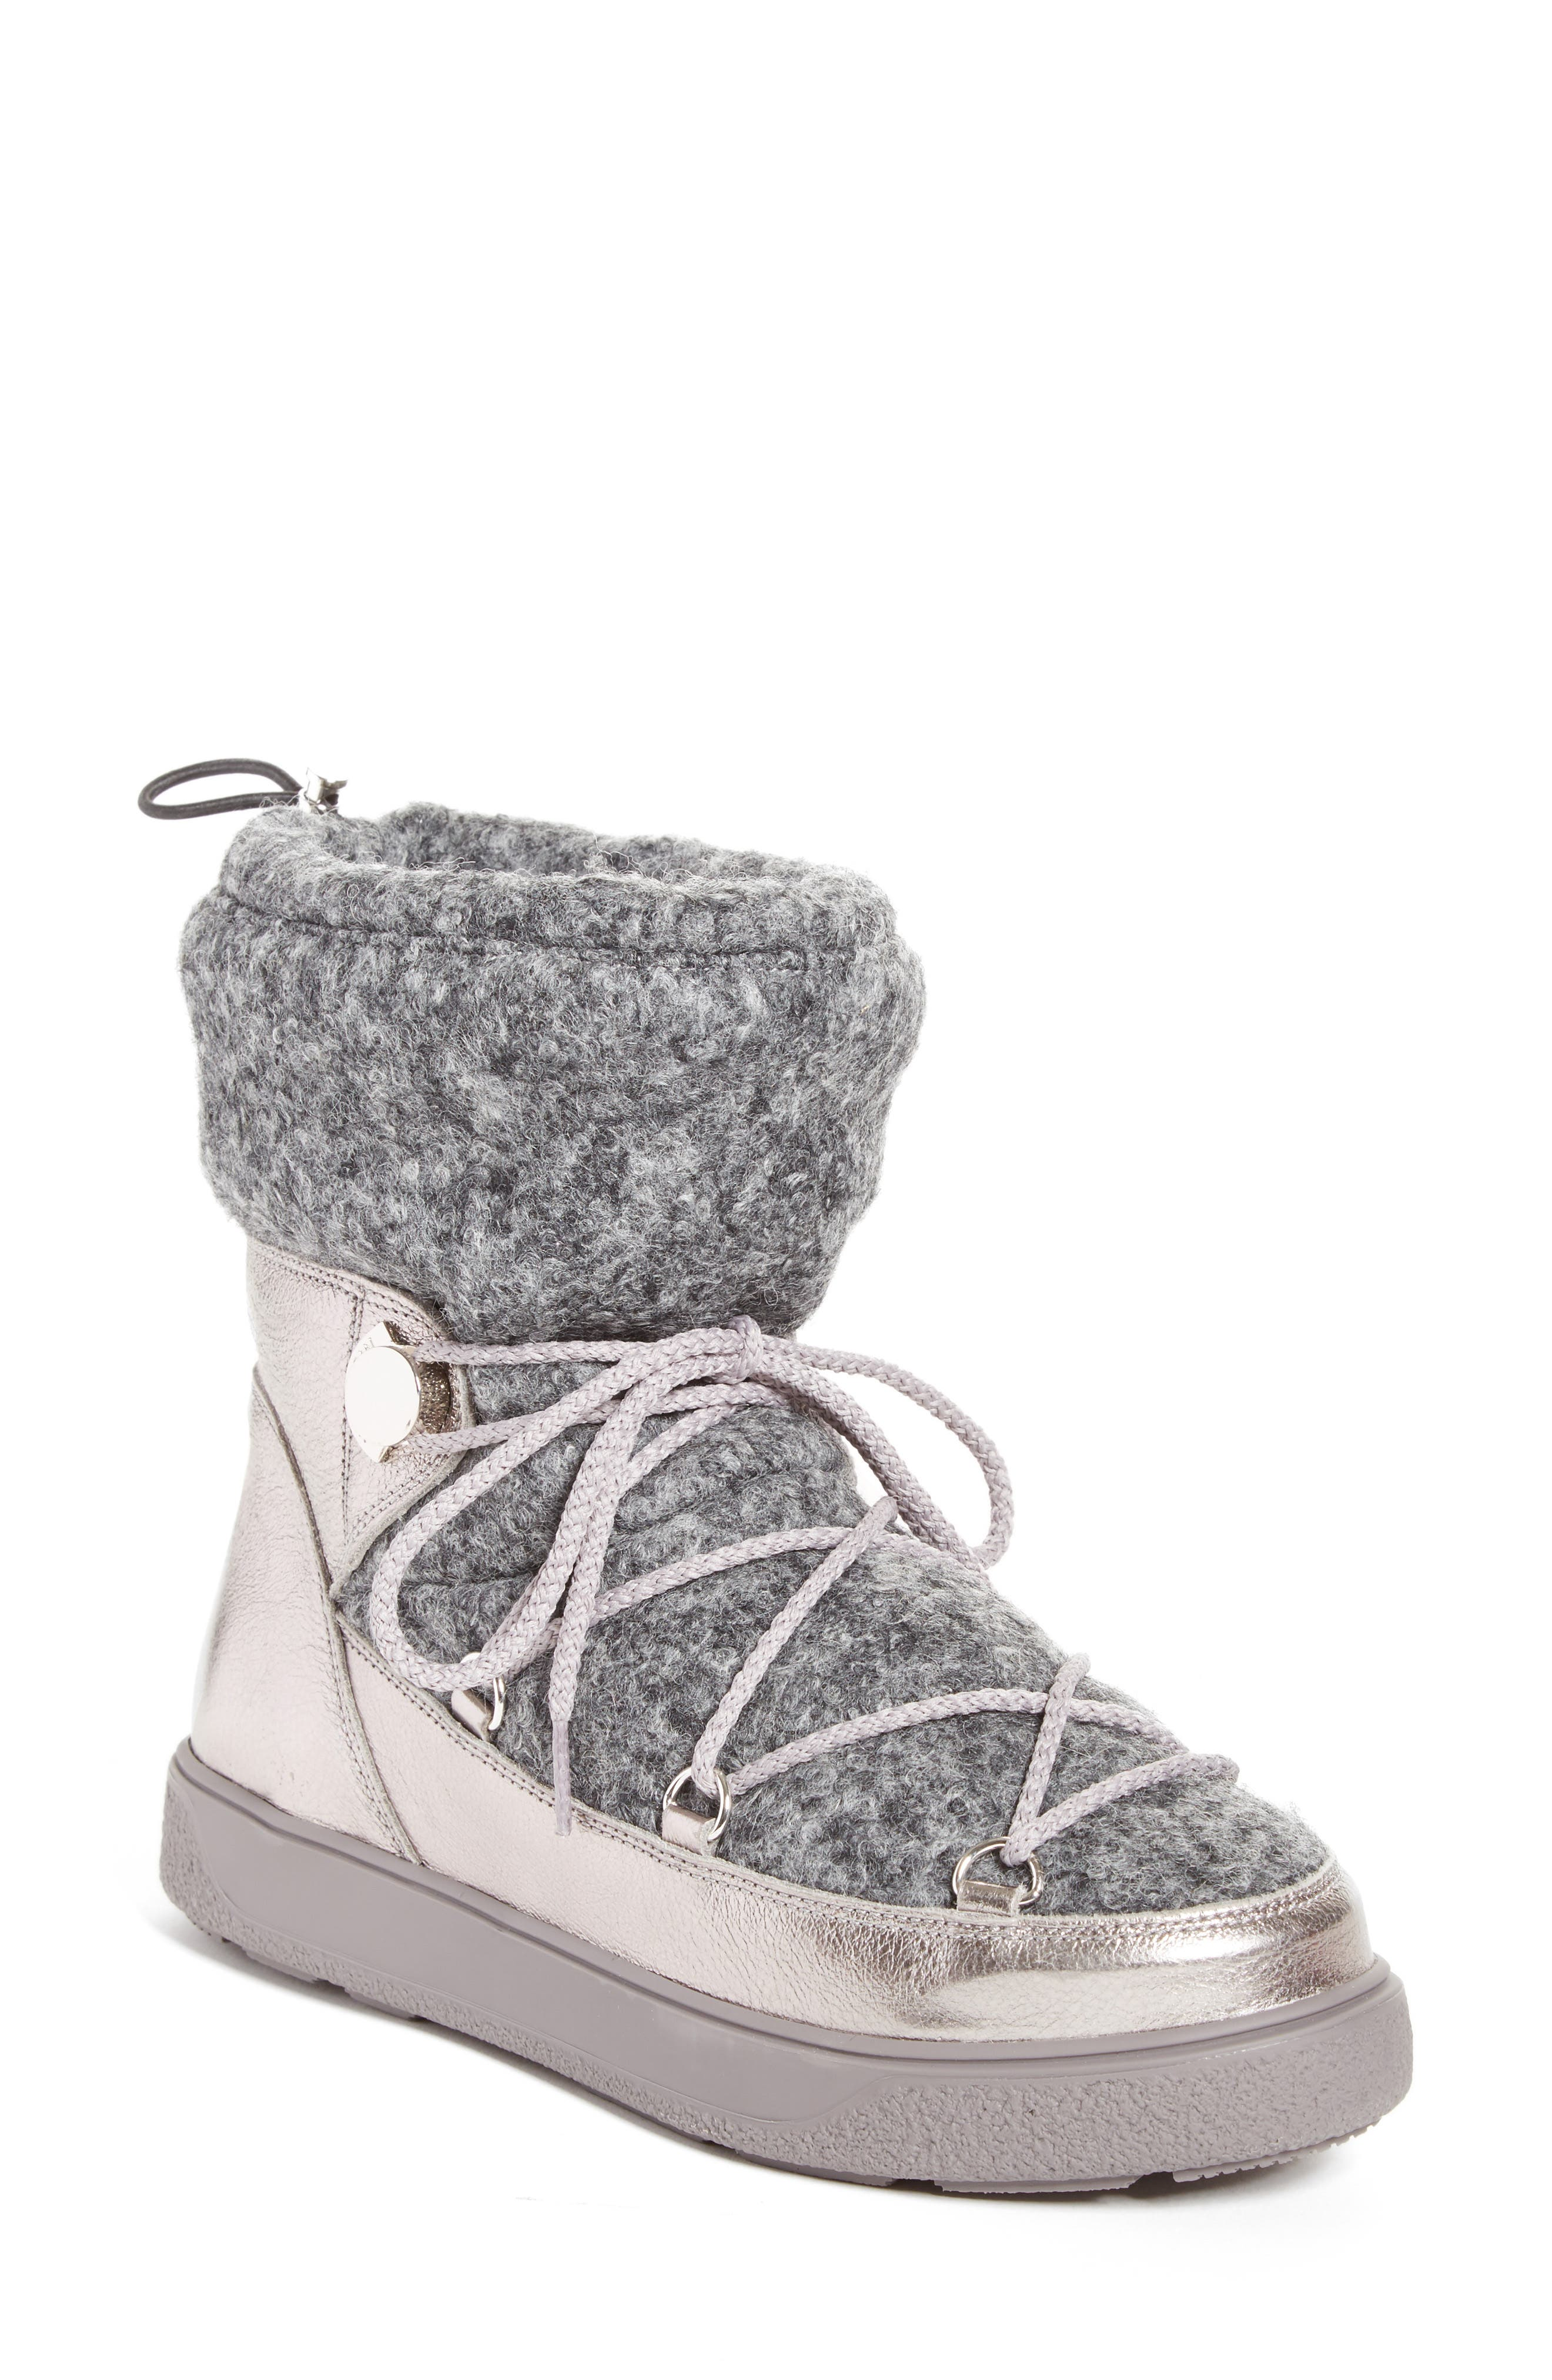 Ynnaf Boiled Wool Lined Snow Boot,                             Main thumbnail 1, color,                             Silver